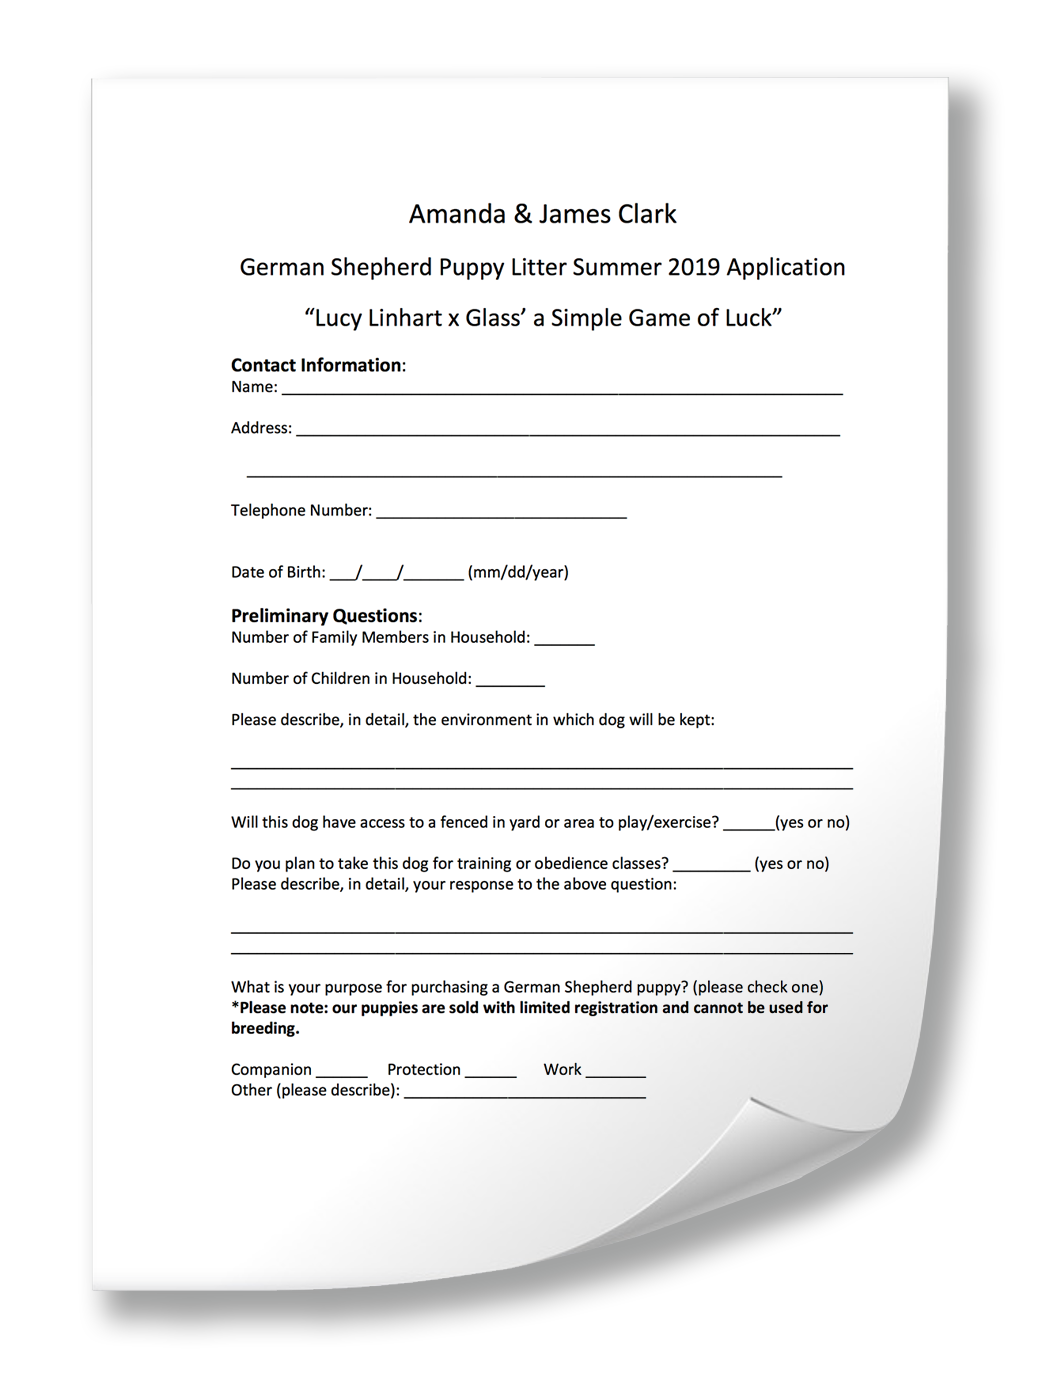 Click the form to download a PDF